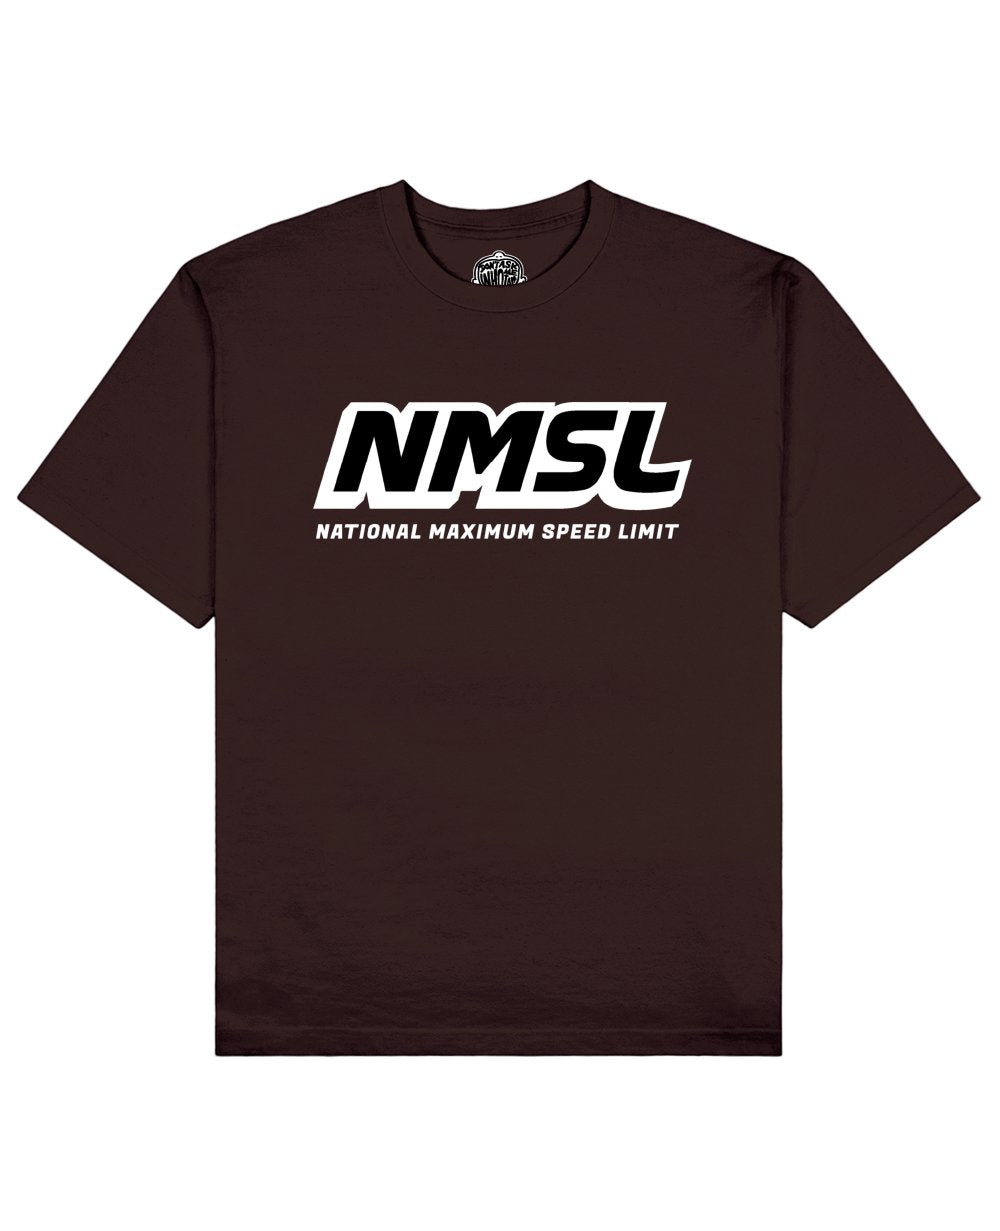 NMSL Print T-shirt in Brown - T-Shirts - Don't ask me who I am - BRANMA